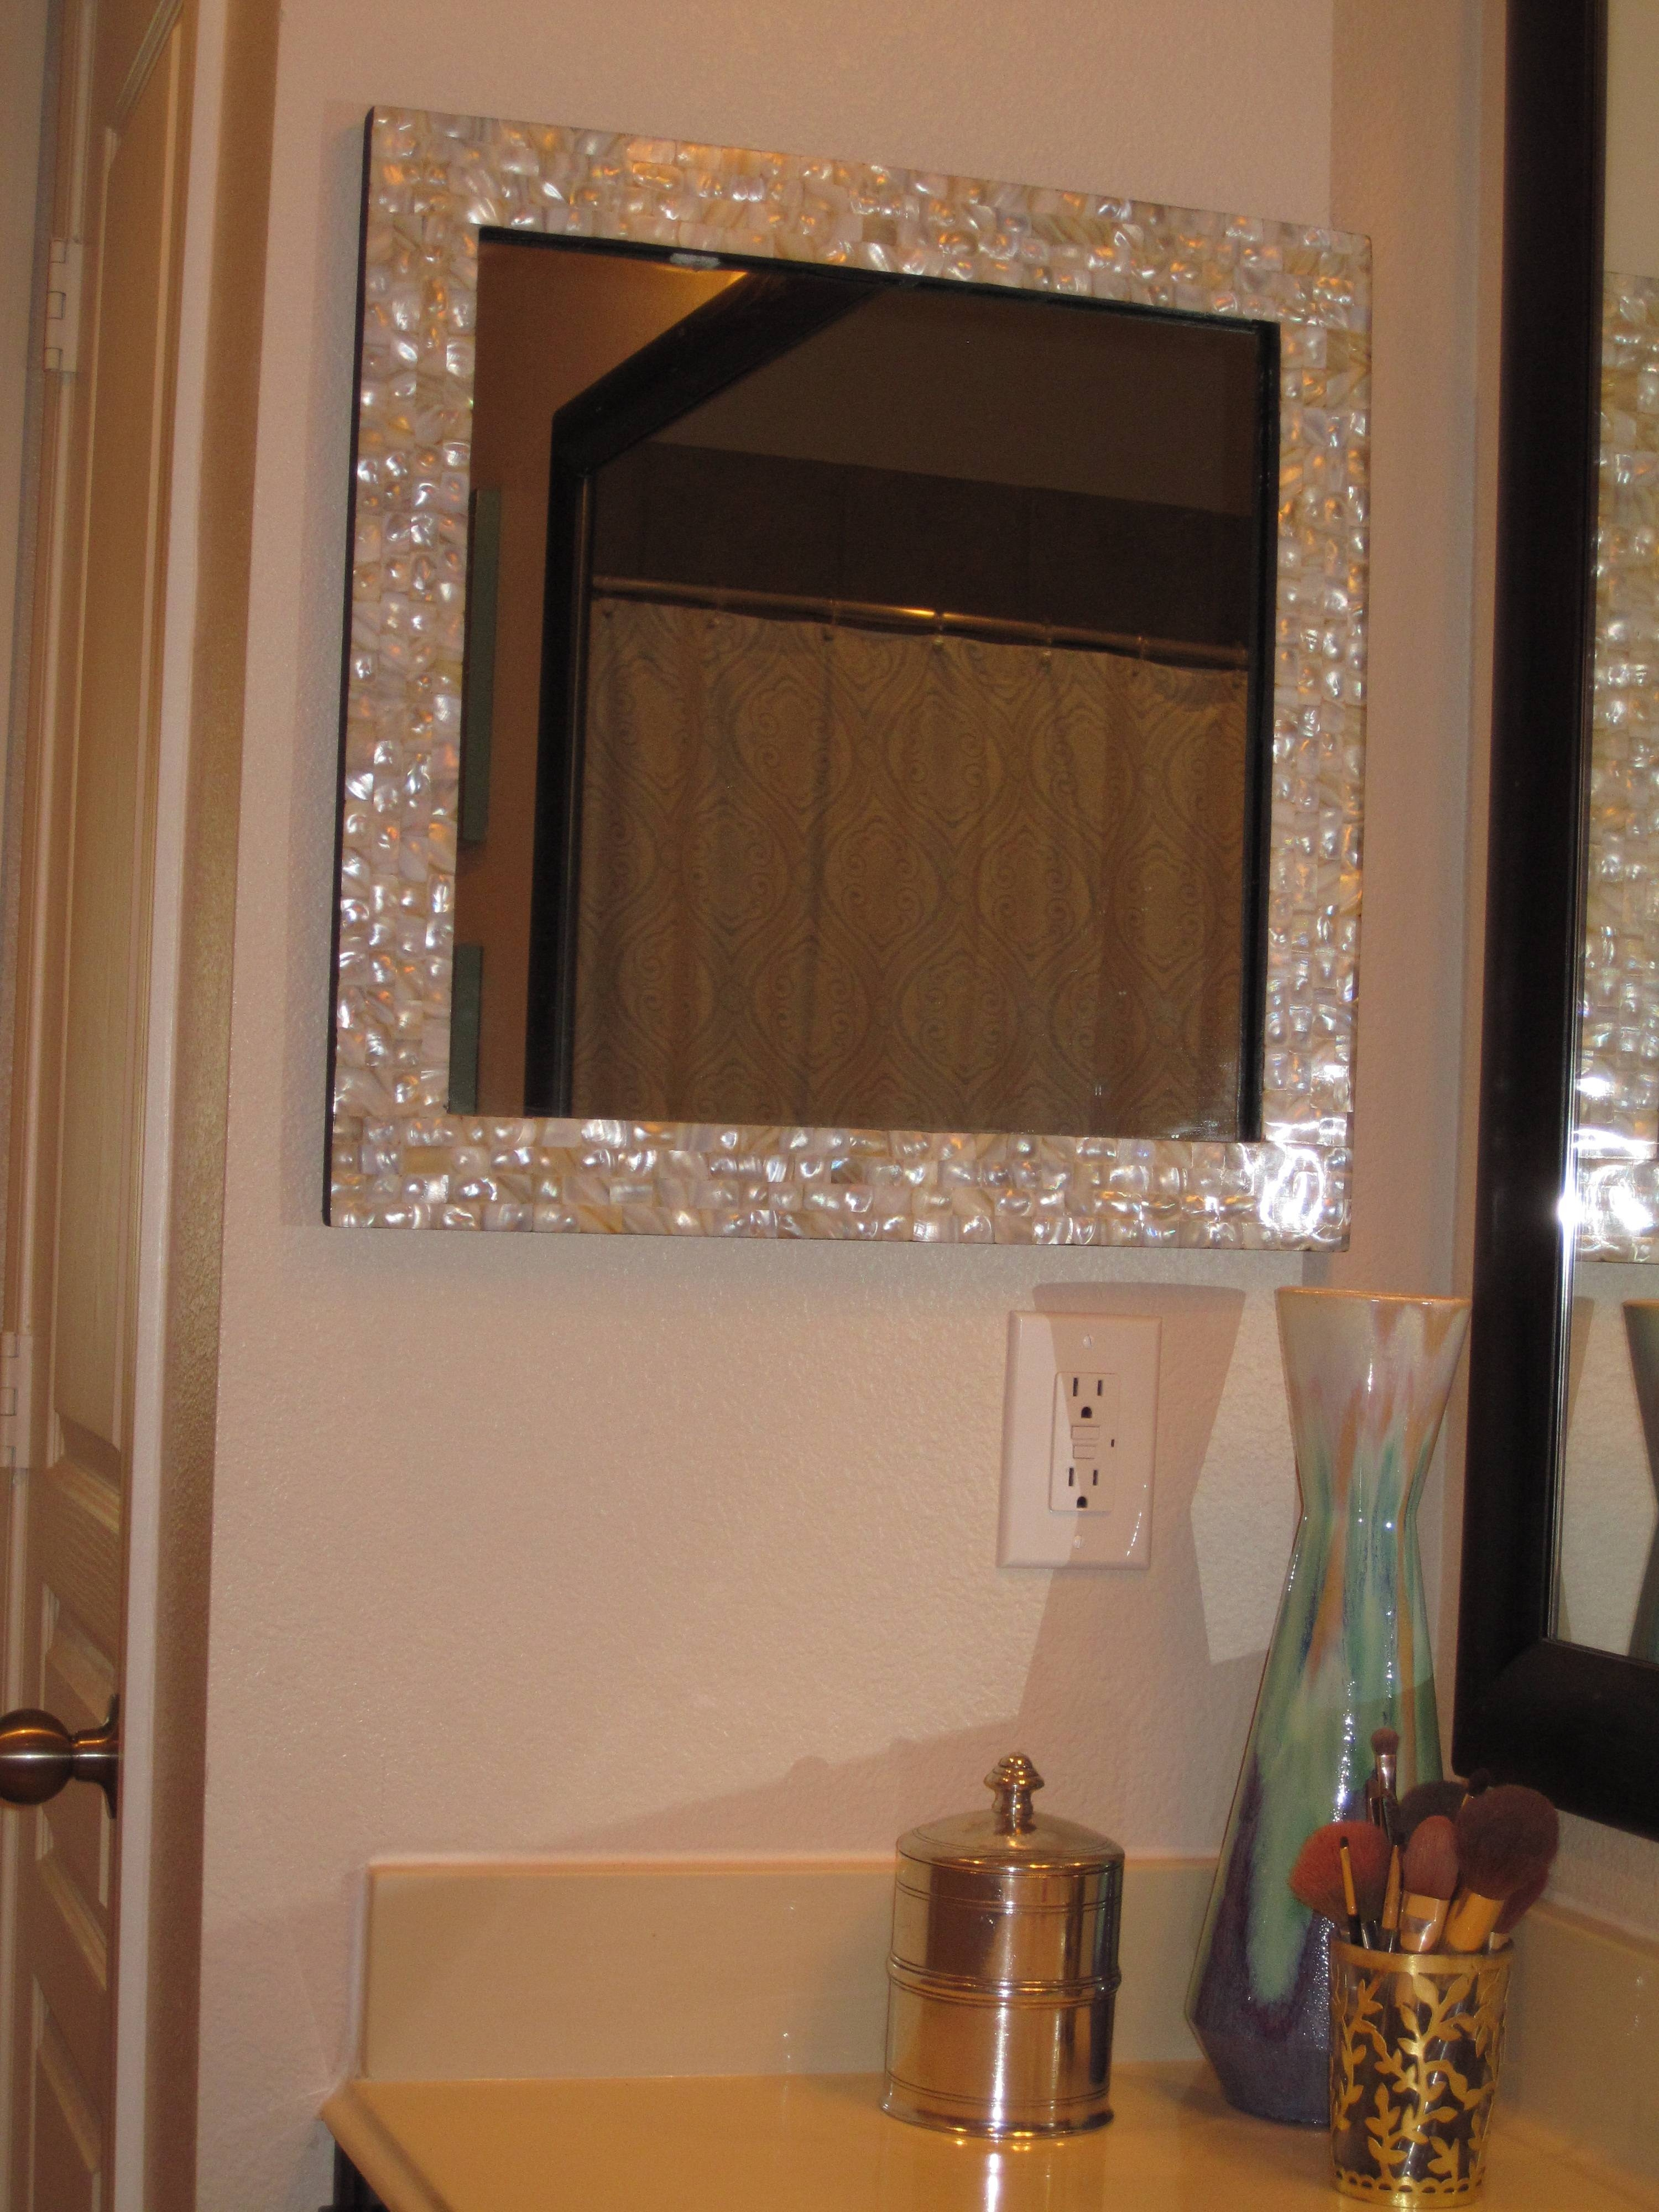 Funky Mirrors For Bathrooms – Decoration within Funky Mirrors for Bathrooms (Image 24 of 25)